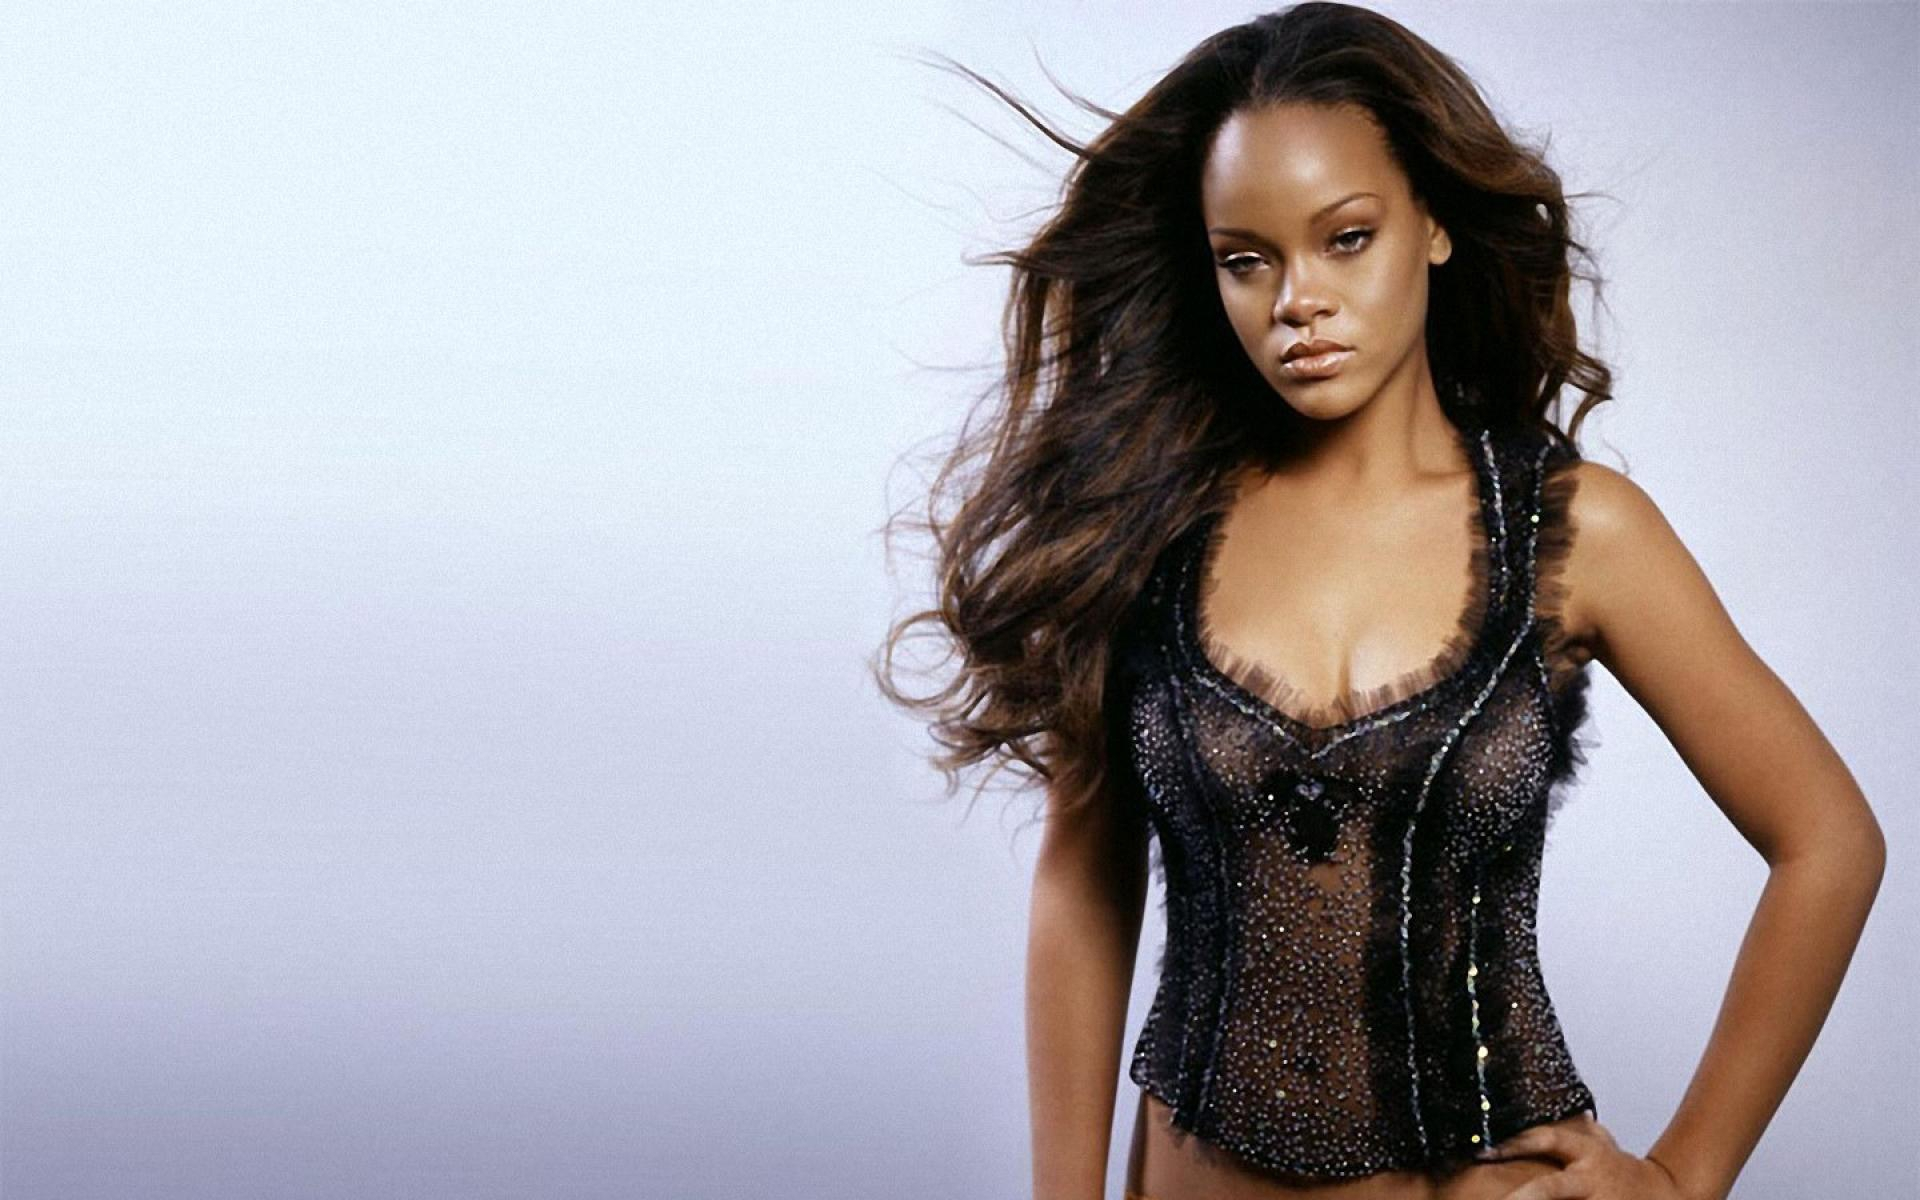 rihanna wallpapers images photos pictures backgrounds